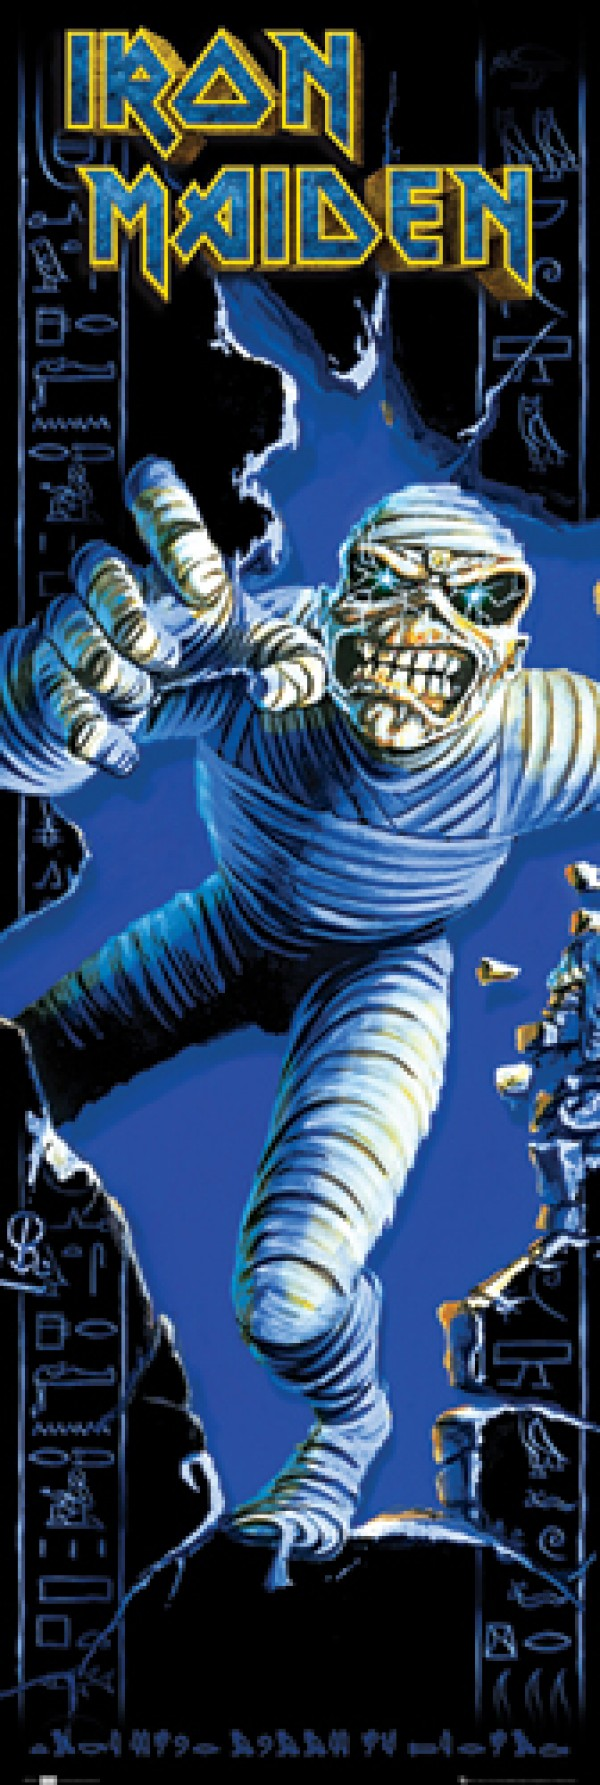 Iron maiden posters 2